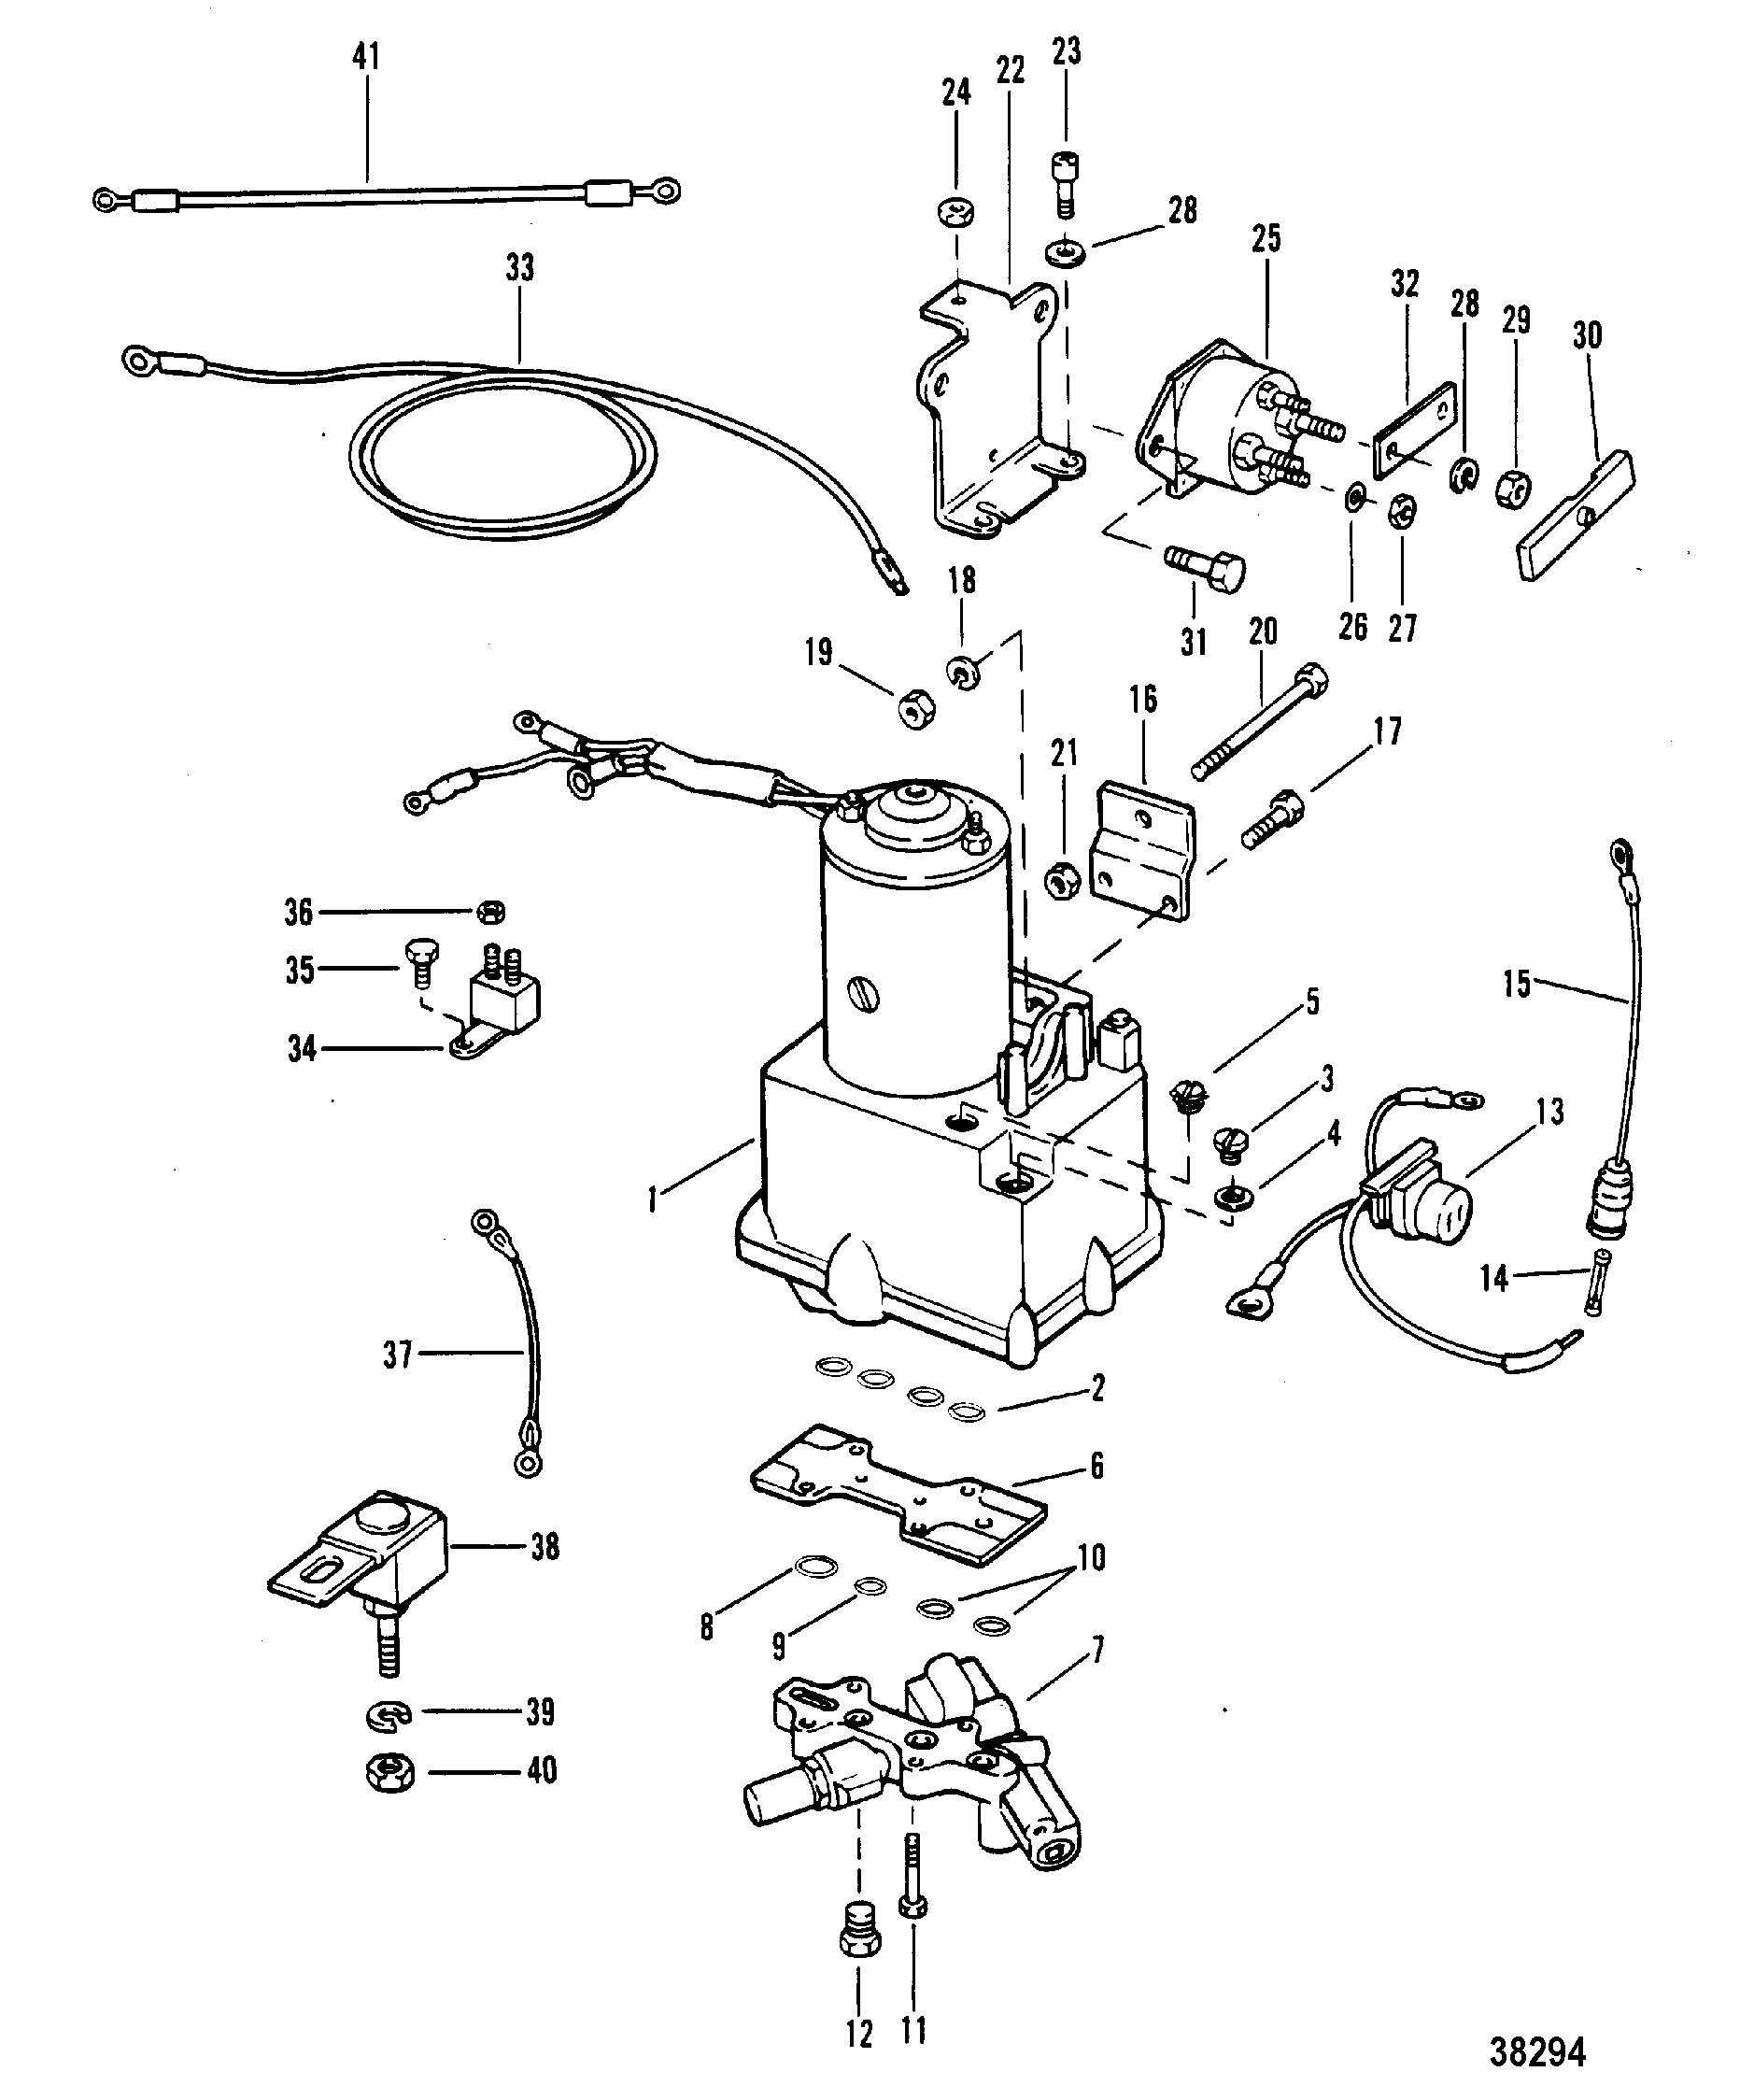 johnson ignition switch wiring diagram johnson discover your mercury marine power trim wiring diagram